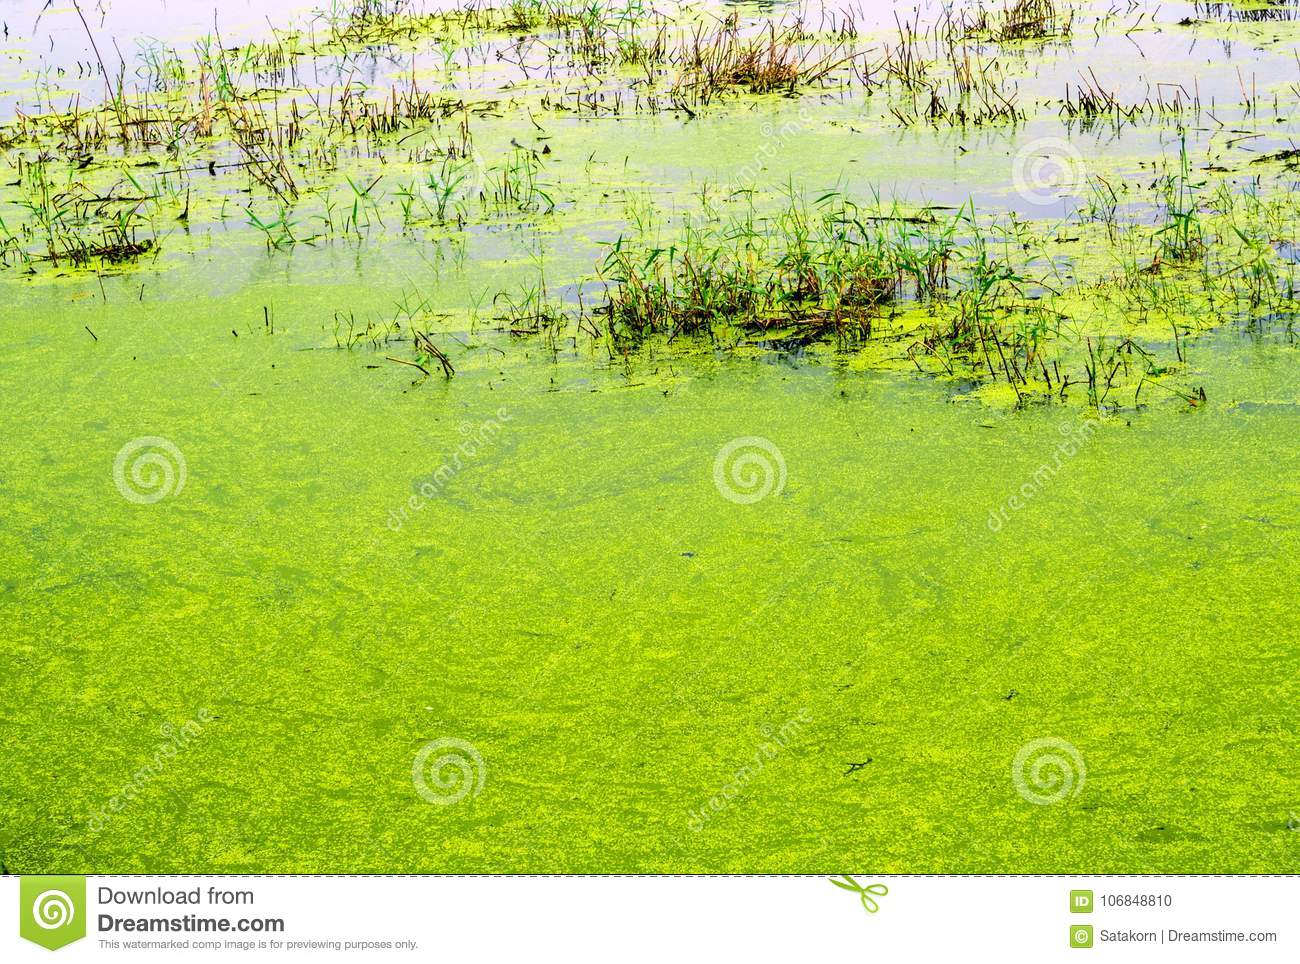 Texture Of Duckweed And Grass In Wetland Stock Photo - Image of